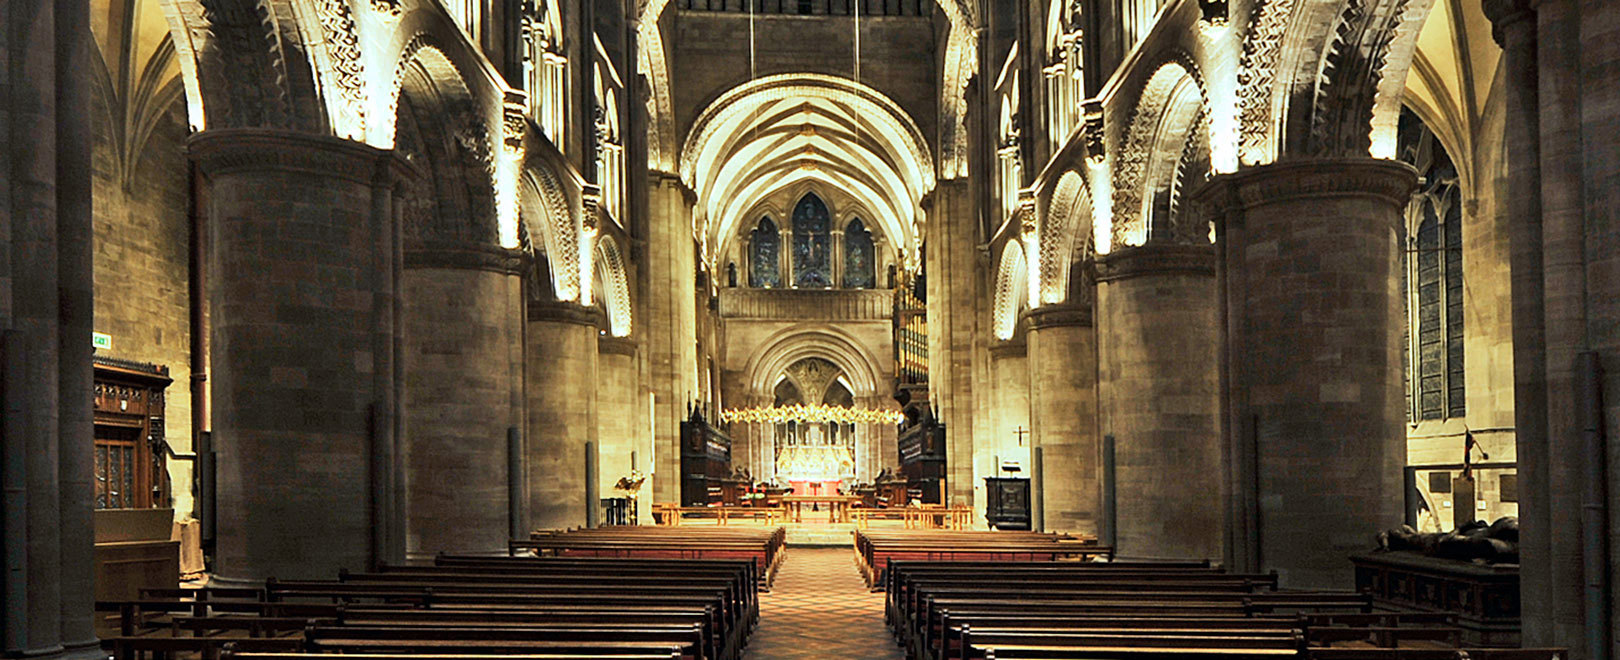 The interior of Hereford Cathedral